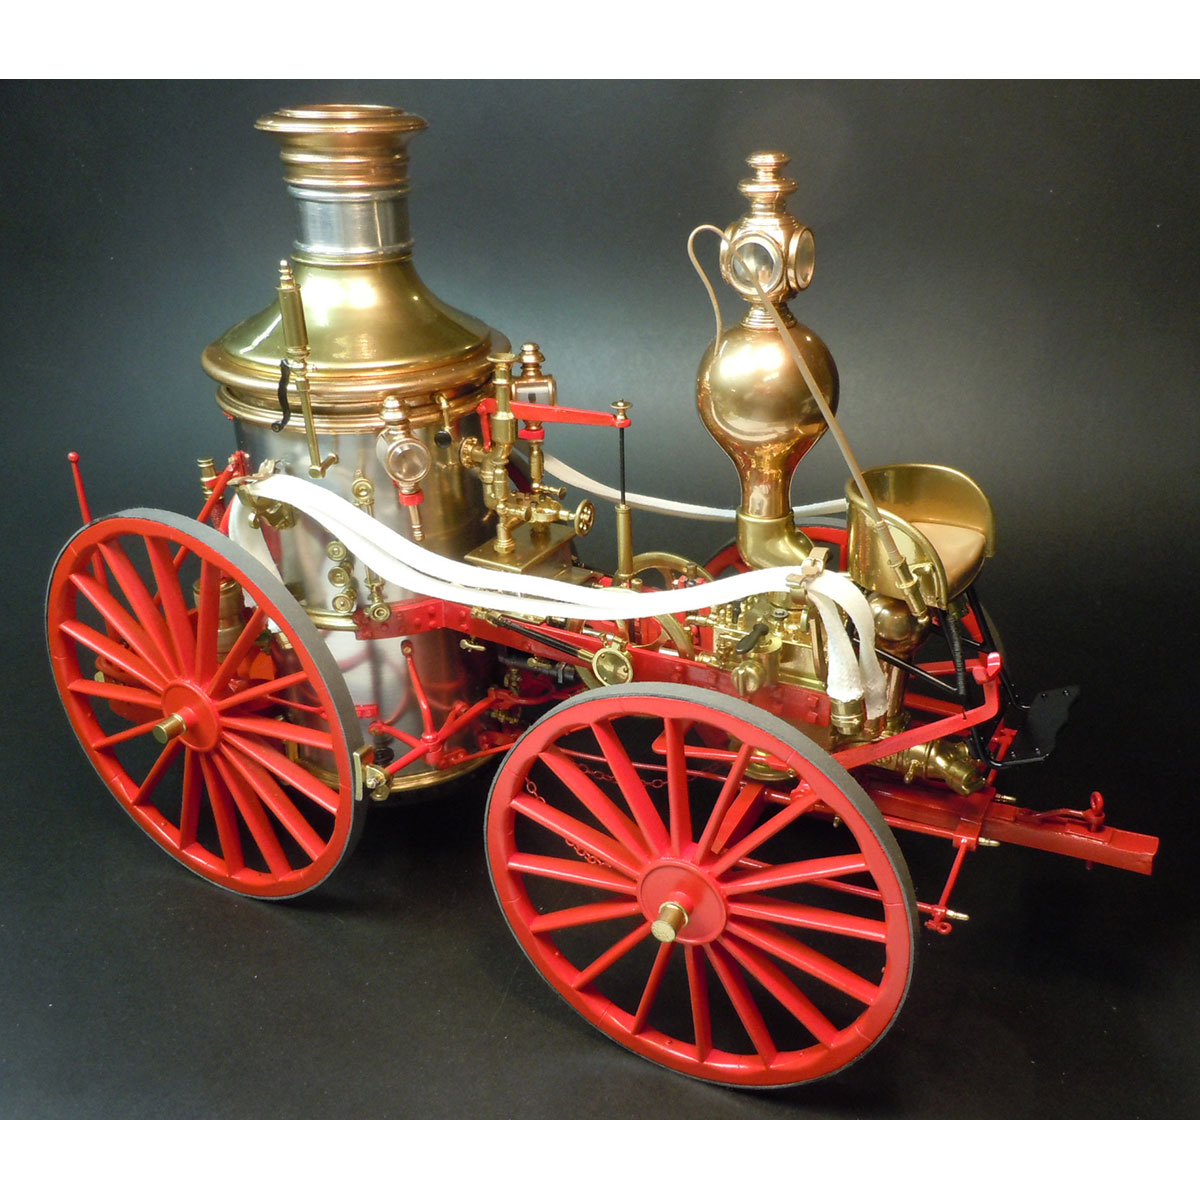 Model Trailways Allerton Steam Pumper Fire Engine 112 Scale Car Diagram Quick View